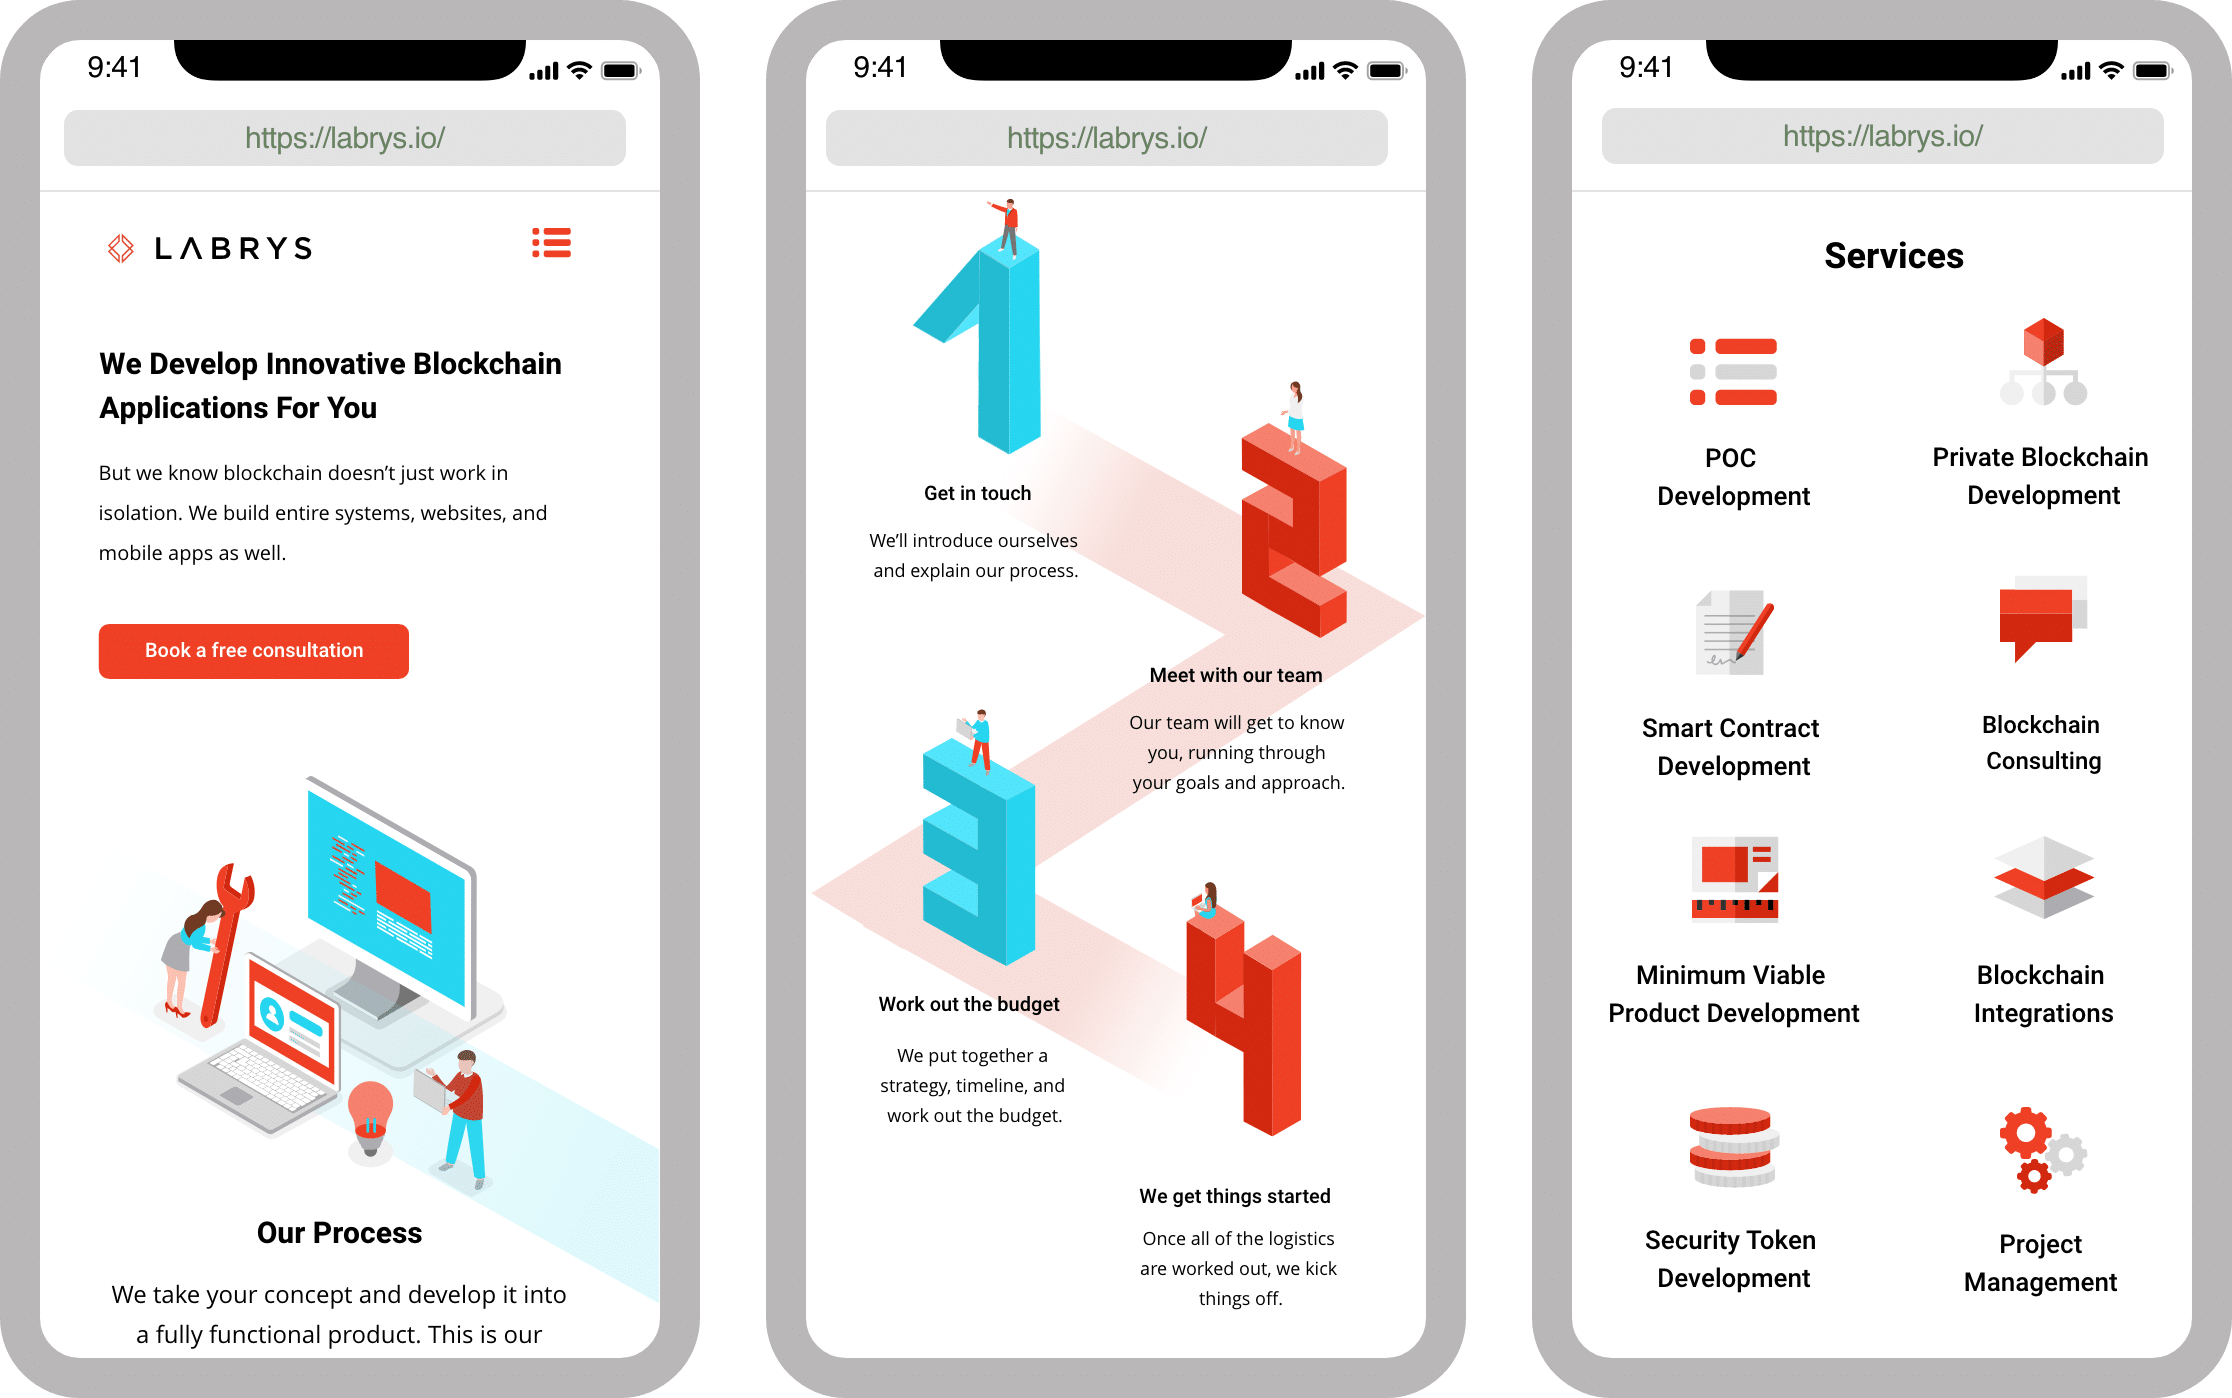 iPhone mockup featuring the Labrys website